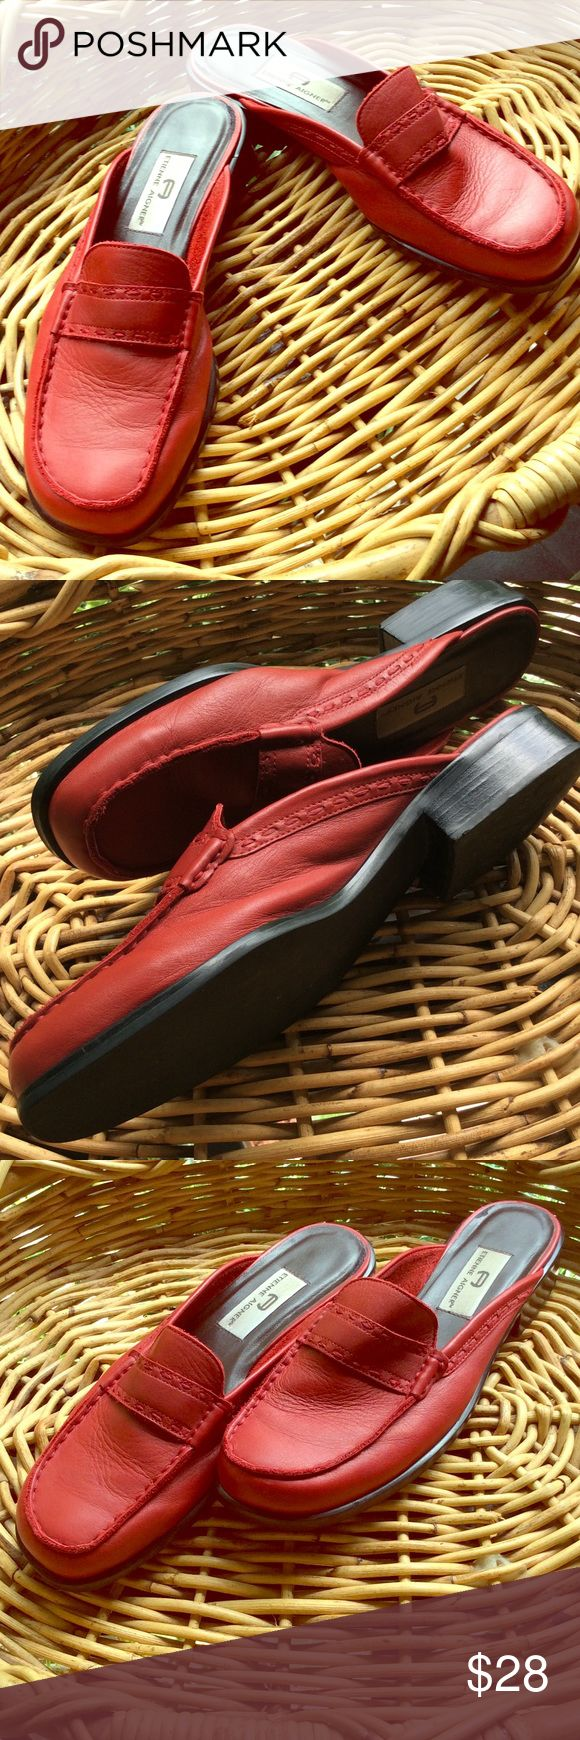 Vintage Etienne Aigner red leather shoes Vintage Etienne Aigner red leather shoes....pretty...great vintage condition! Etienne Aigner Shoes